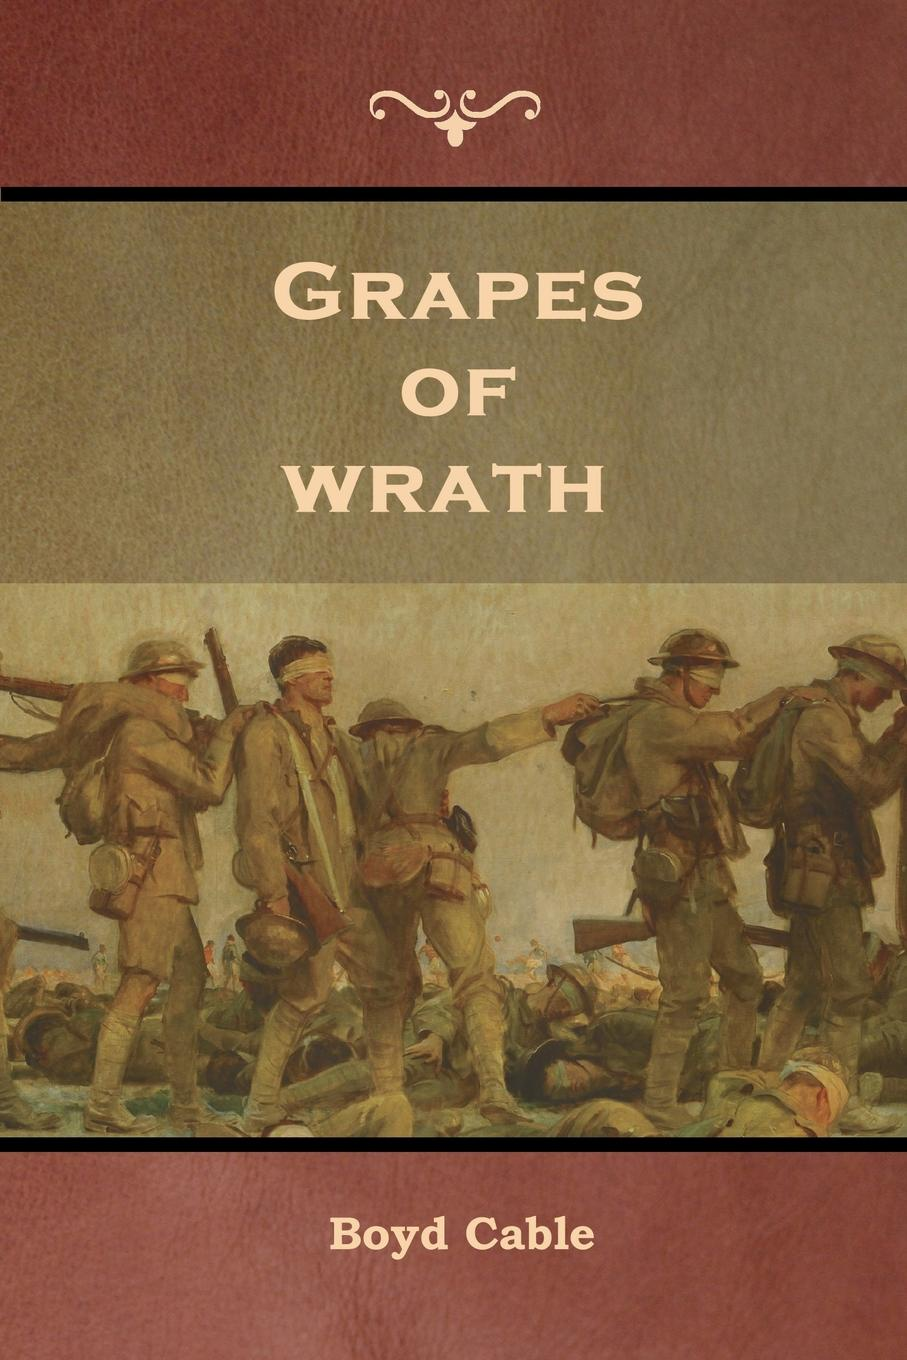 Boyd Cable Grapes of wrath